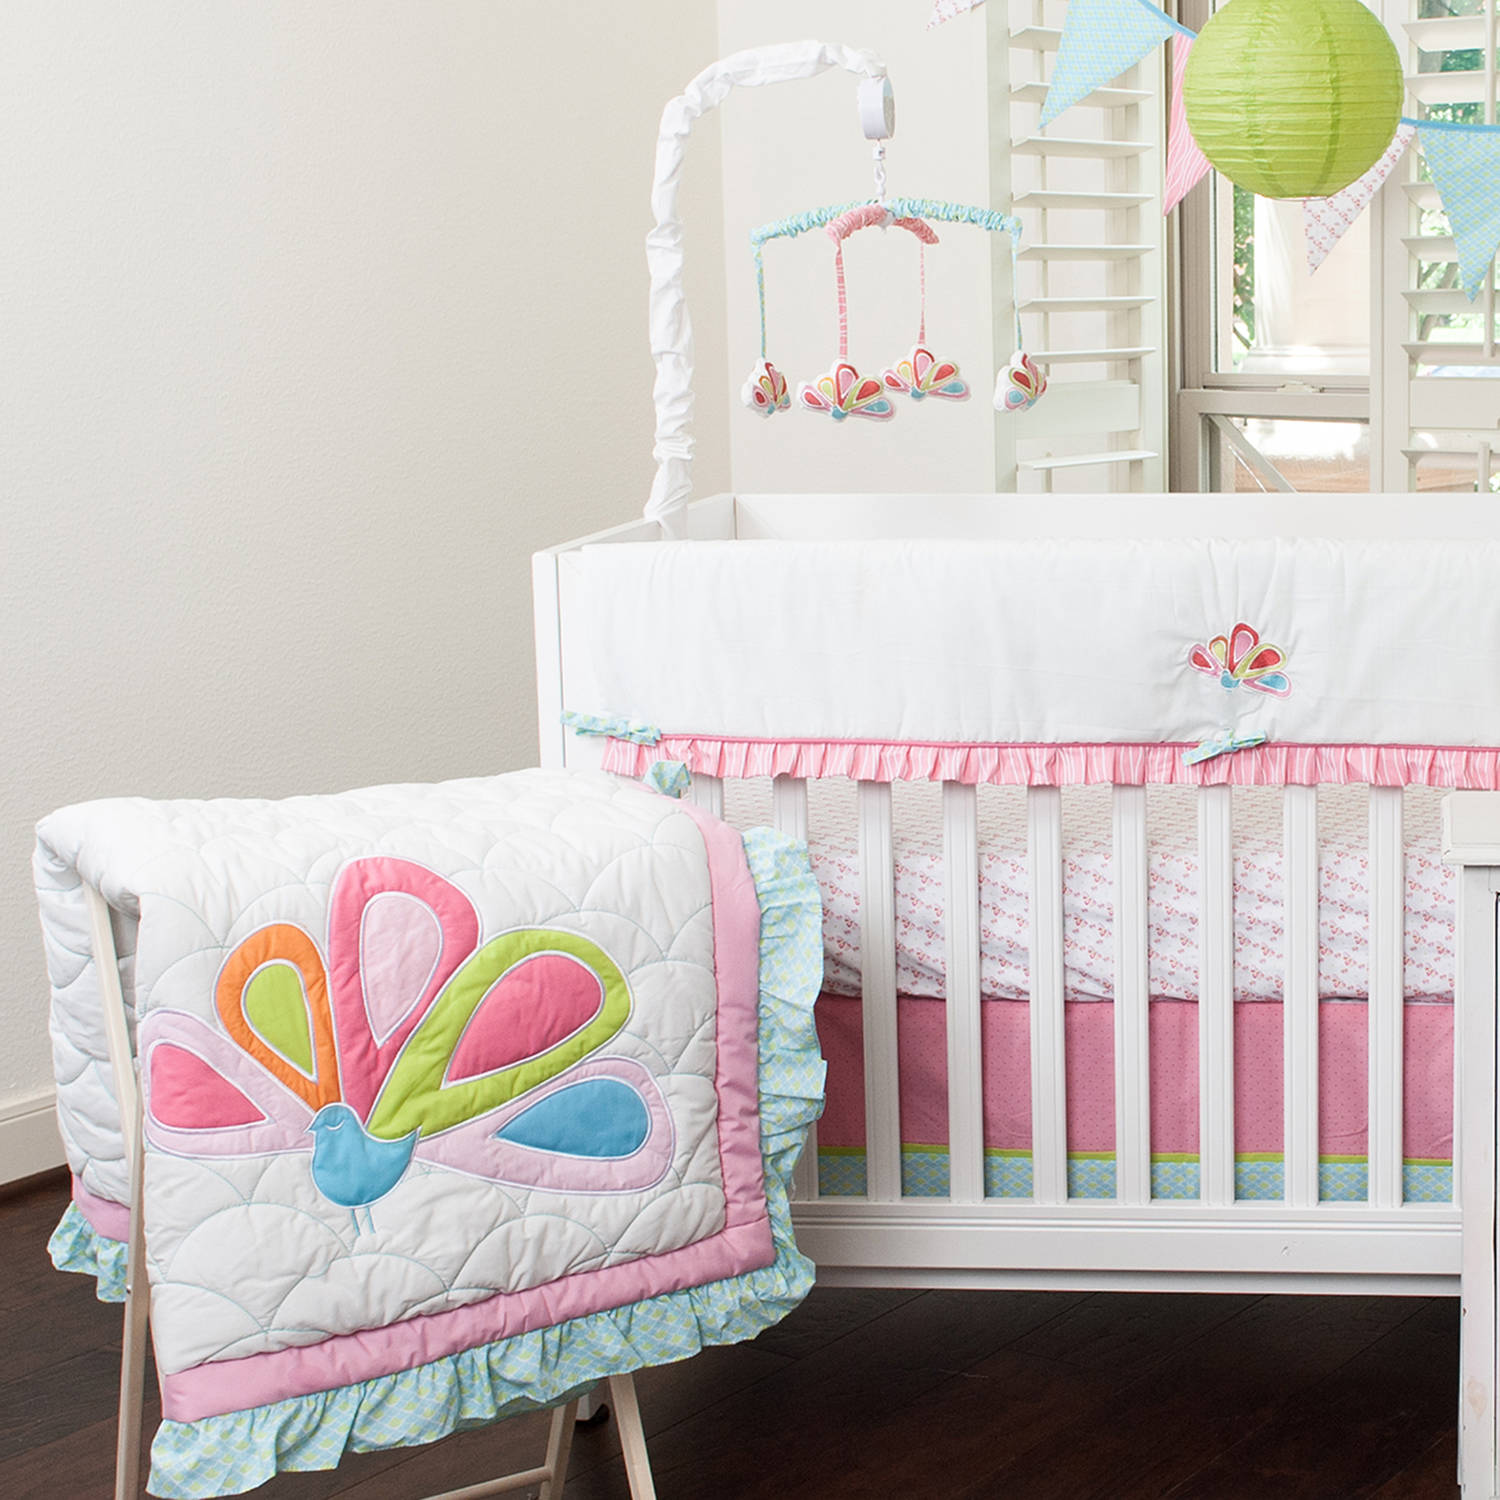 awesome Peacock Baby Bedding Sets Part - 6: Pam Grace Creations Aqua Peacock Mix and Match 10-Piece Crib Bedding Set -  Walmart.com